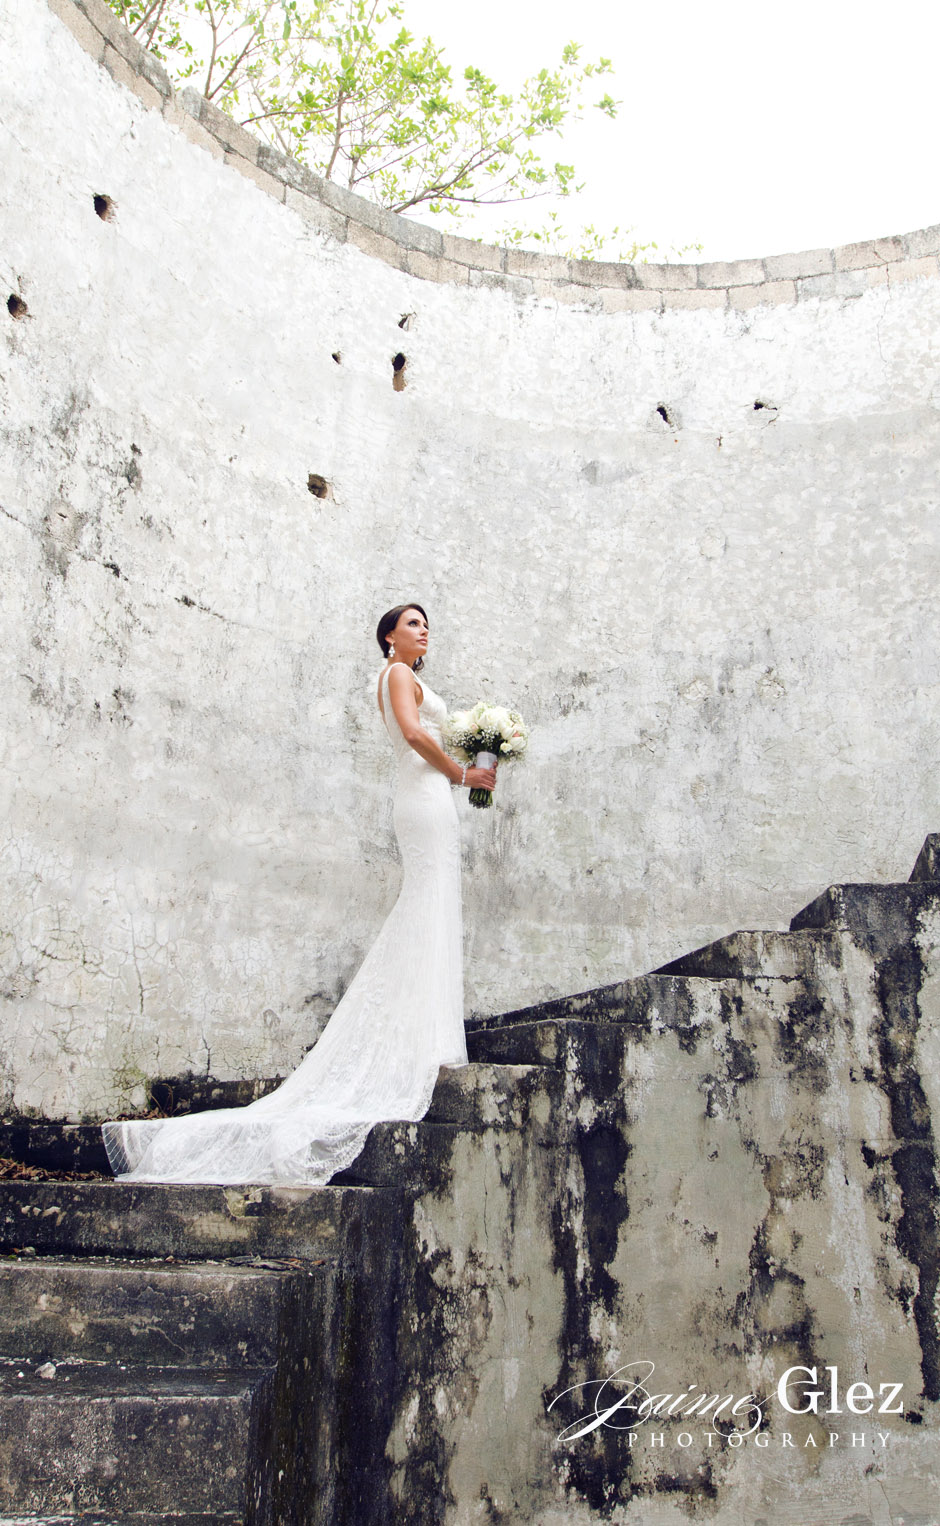 Ancient ruins and a gorgeous bride made an excellent photo!